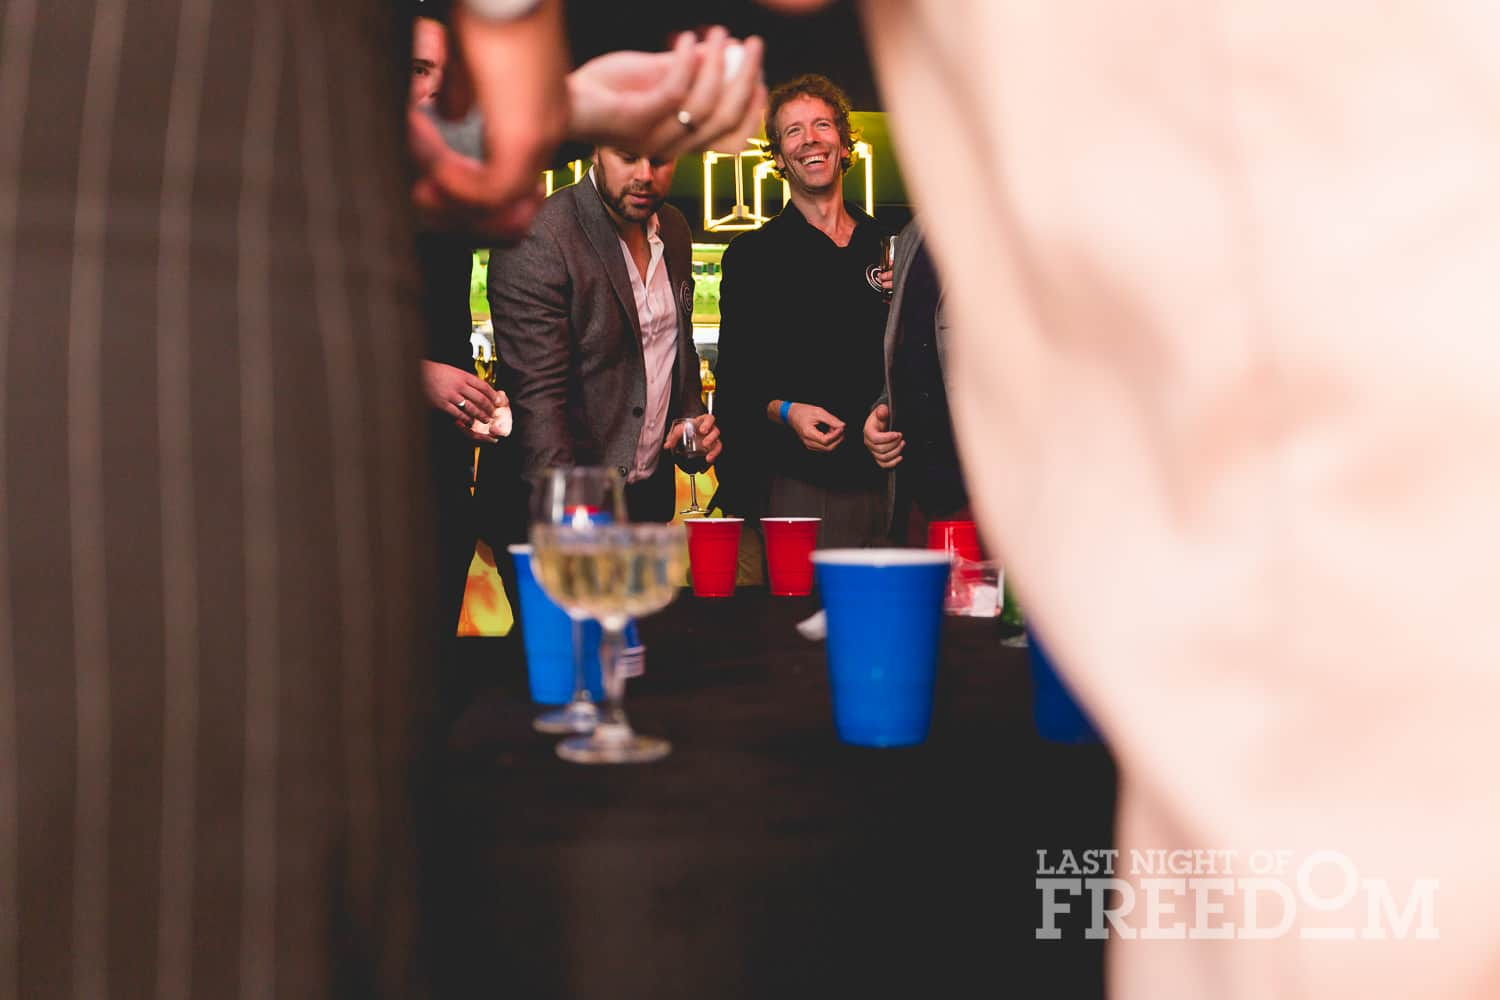 A shot through two people, showing men playing beer pong in a bar